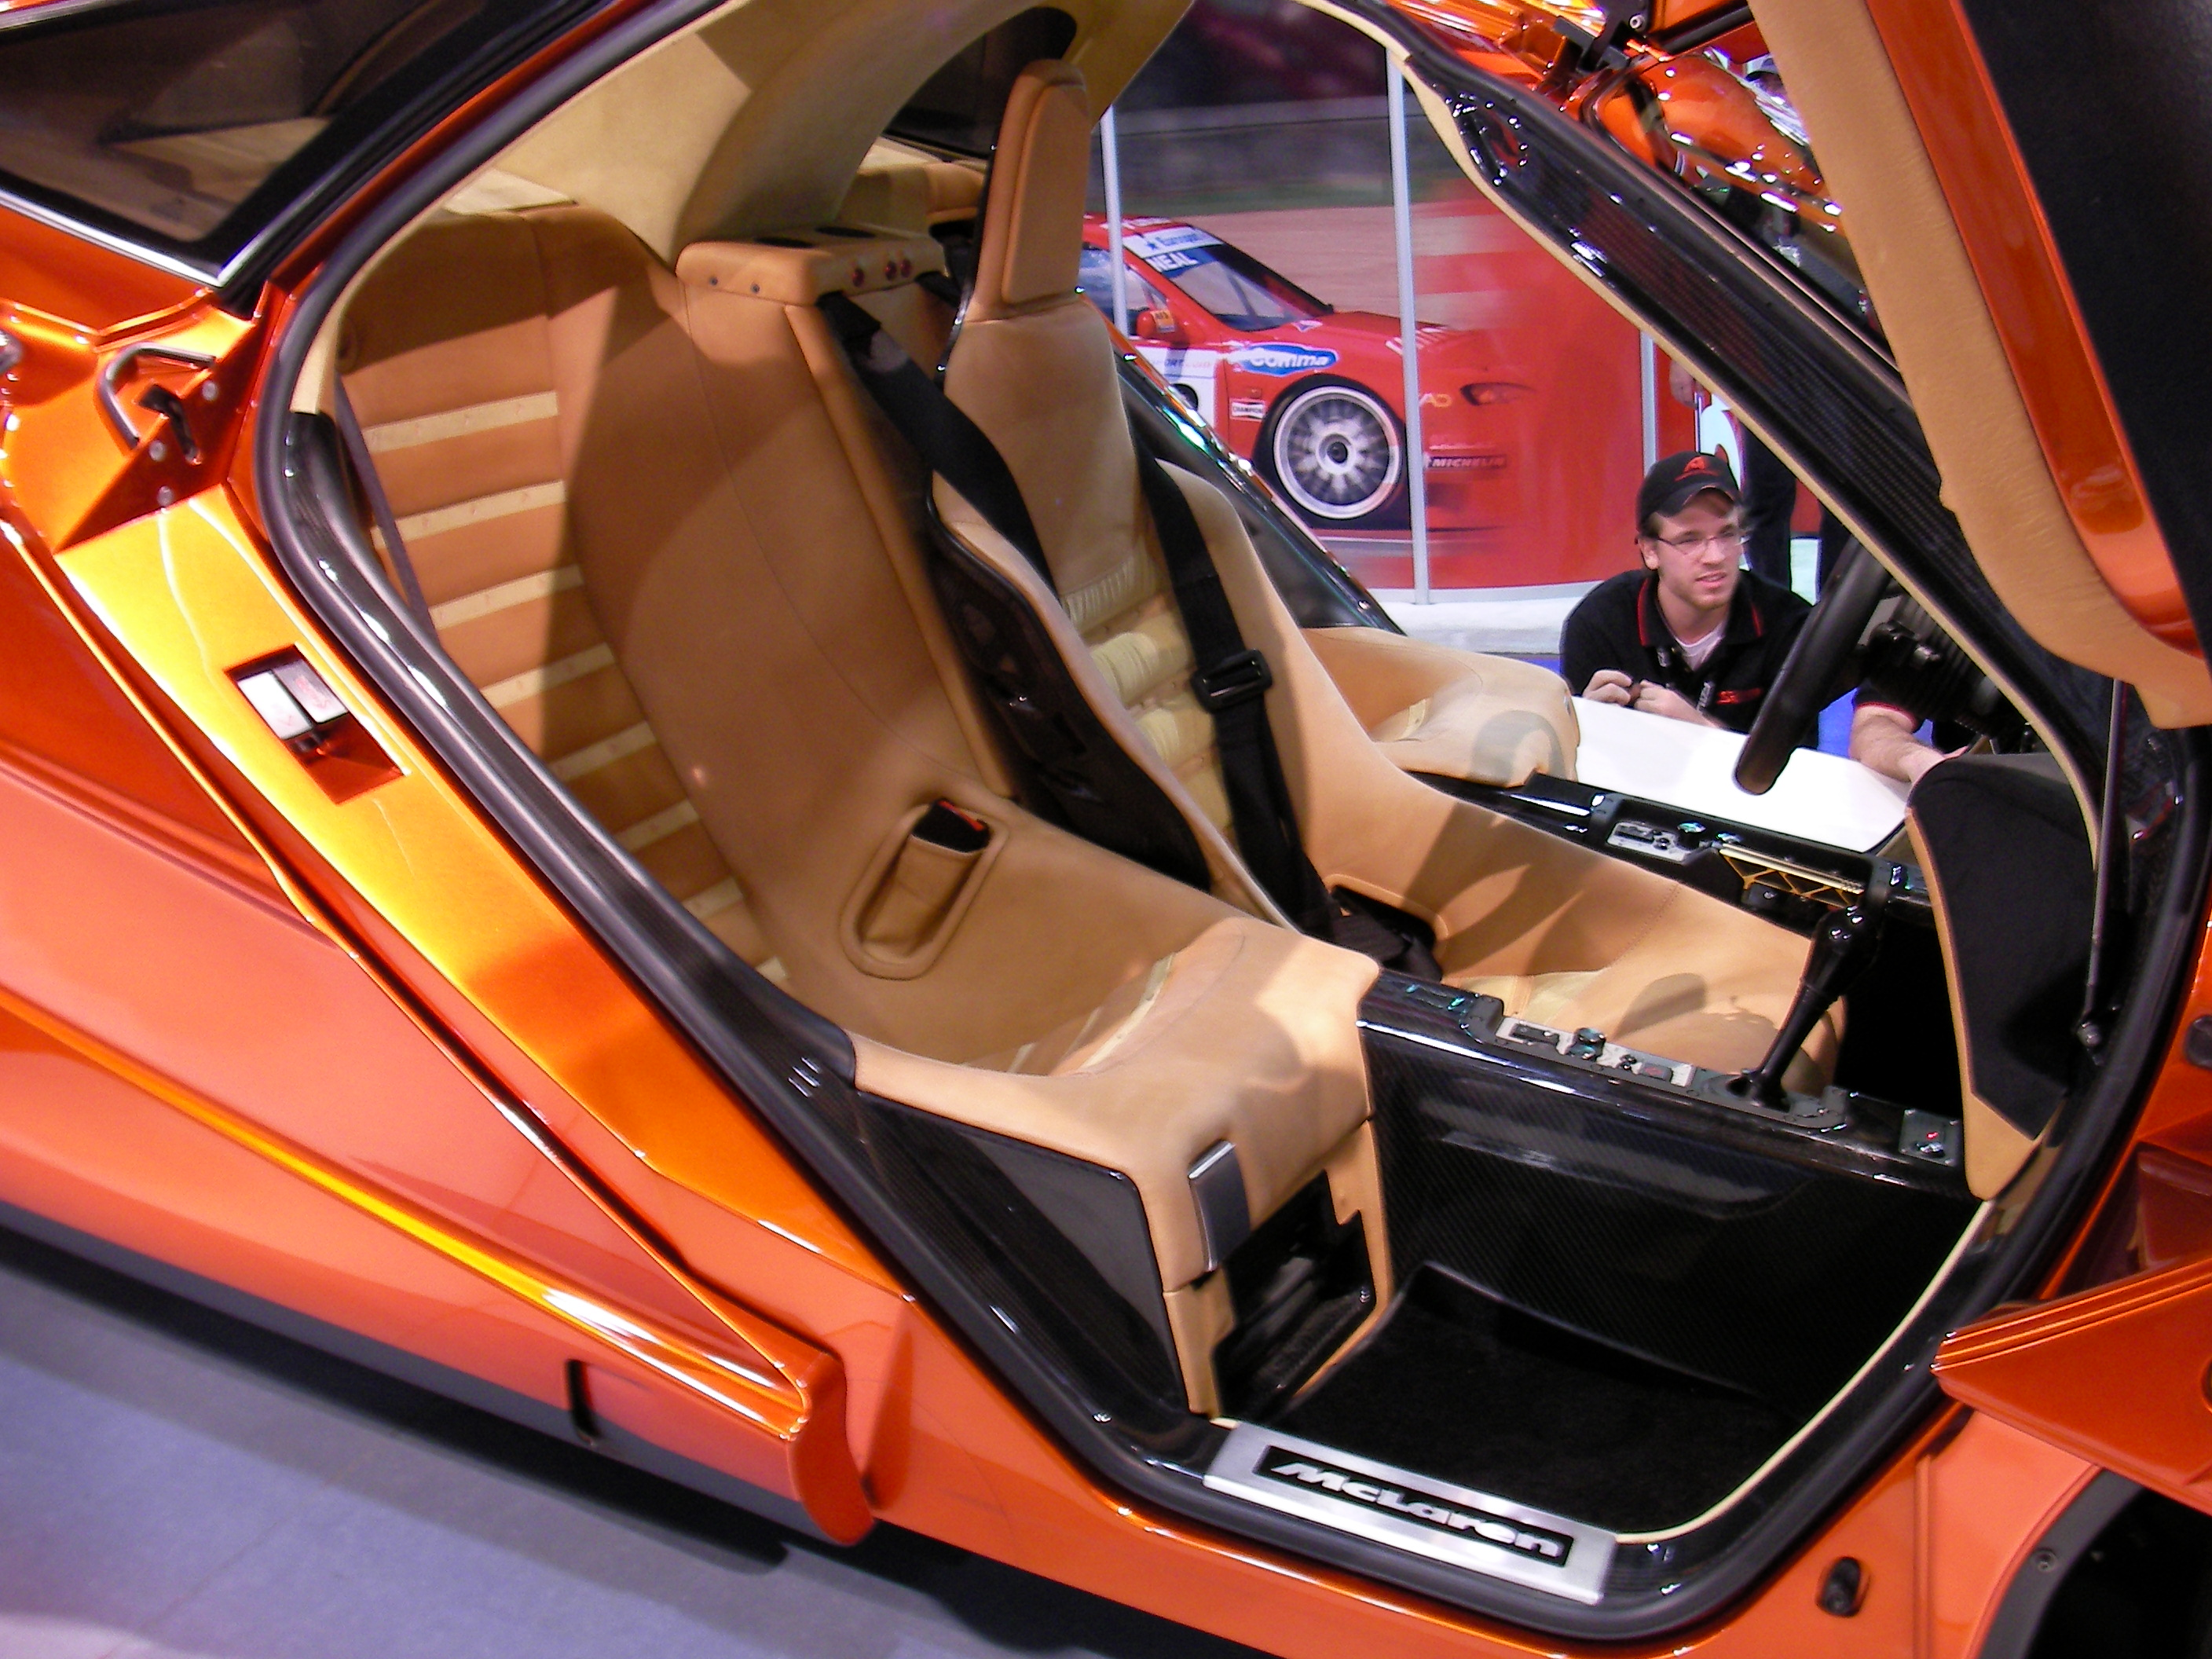 Looking at this pic of the mclaren f1 interior i really like the idea